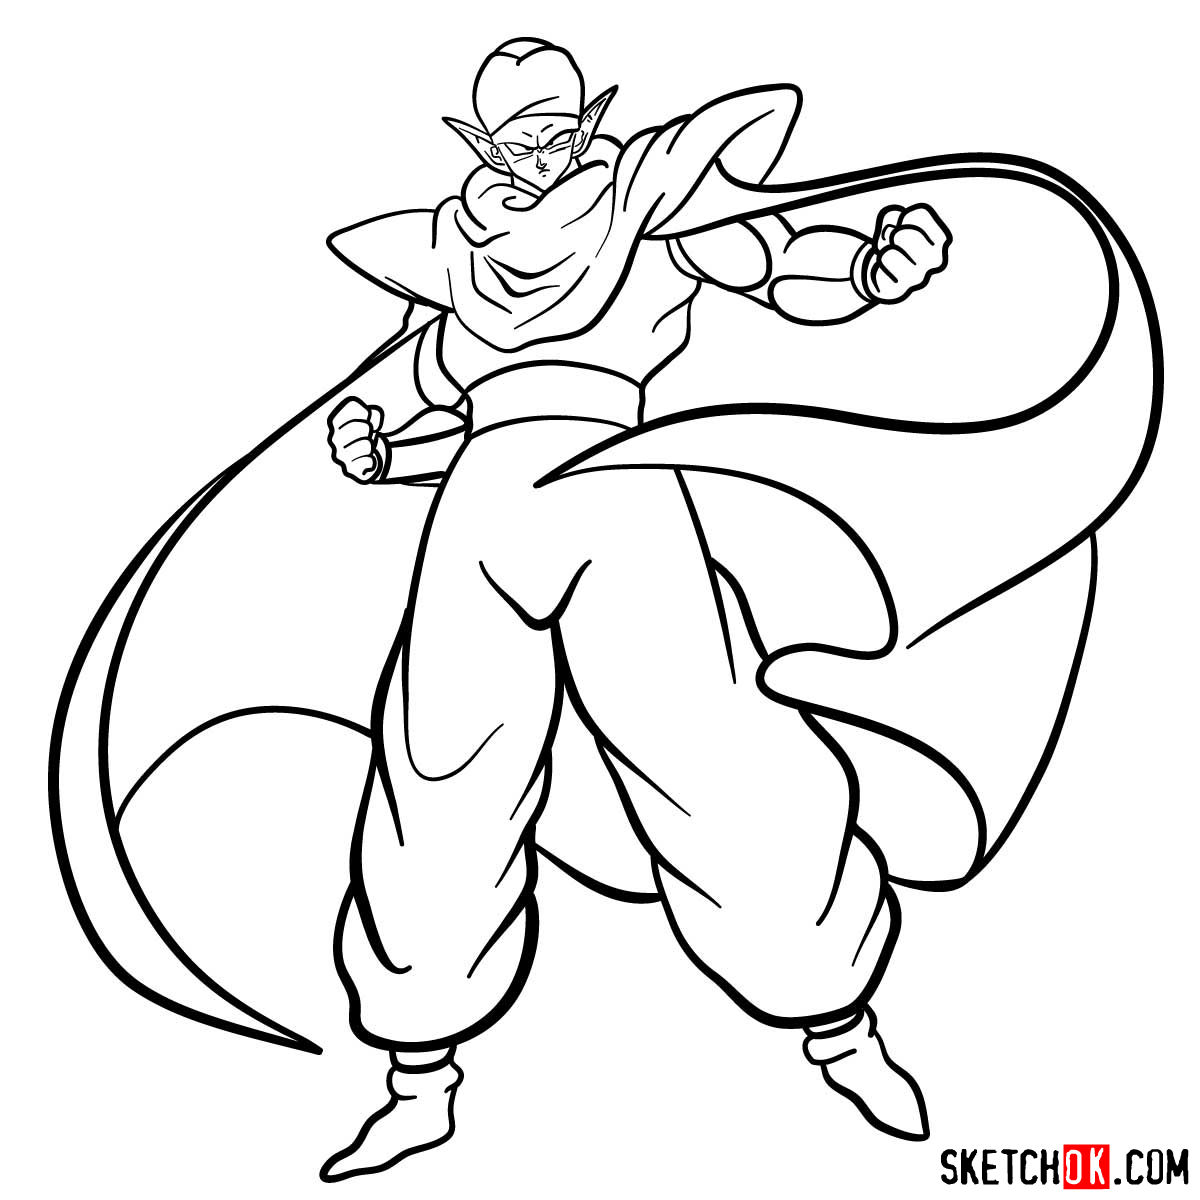 How to draw Piccolo | Dragon Ball anime - step 14